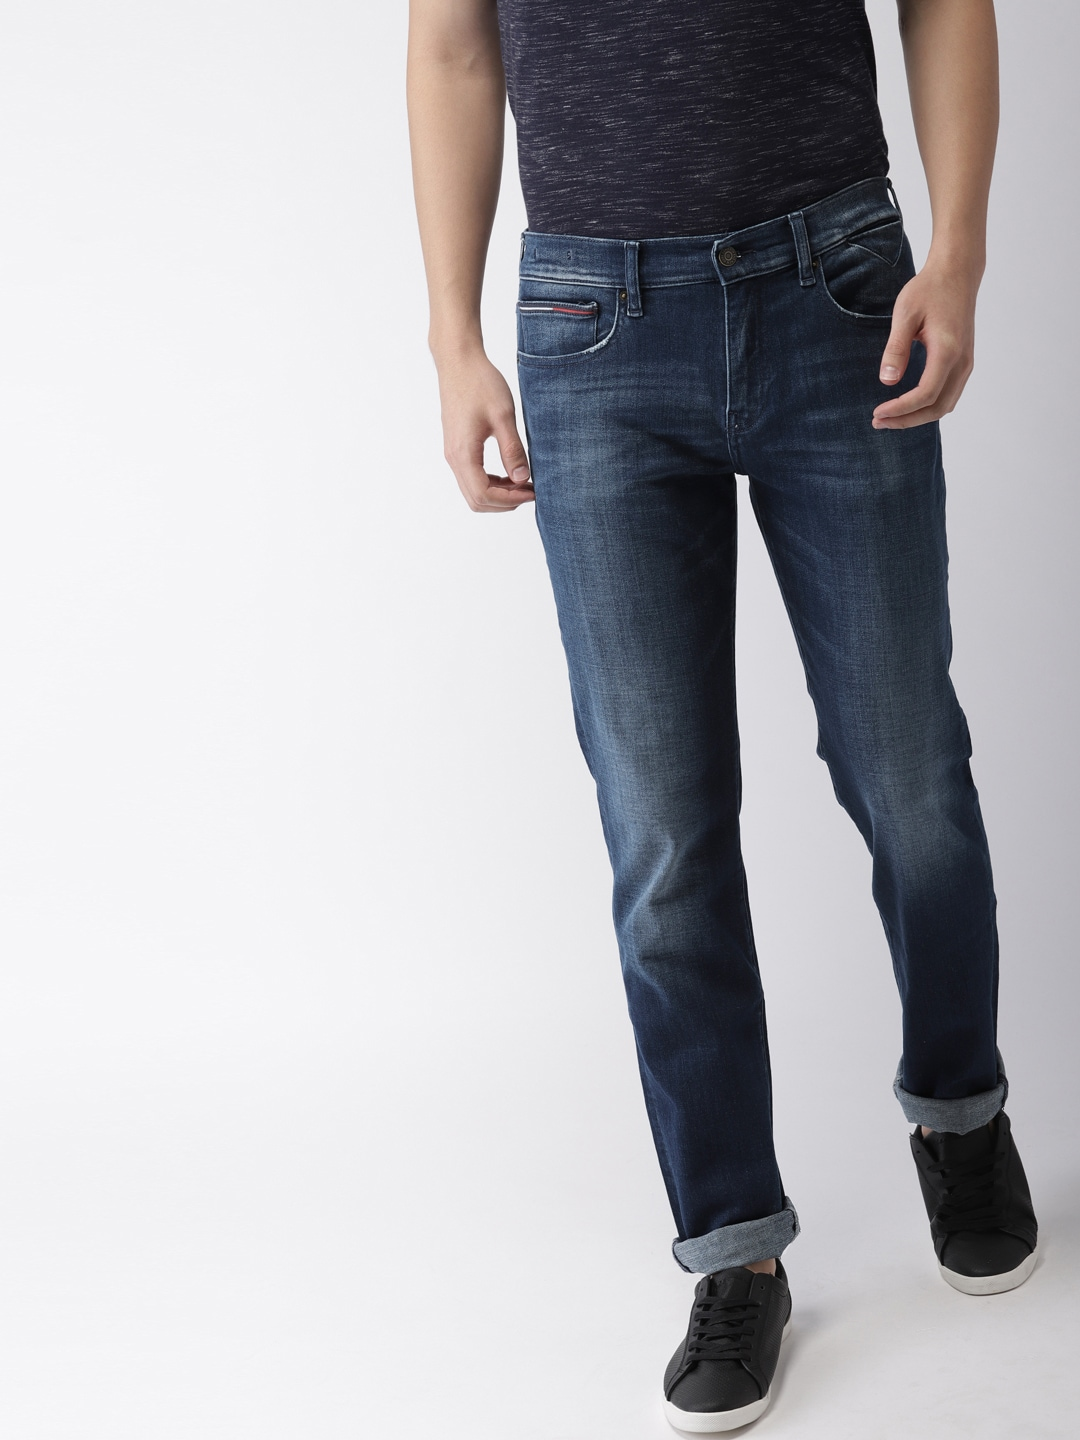 35db56c35 Tommy Hilfiger Straight Fit Denim Jeans - Buy Tommy Hilfiger Straight Fit  Denim Jeans online in India